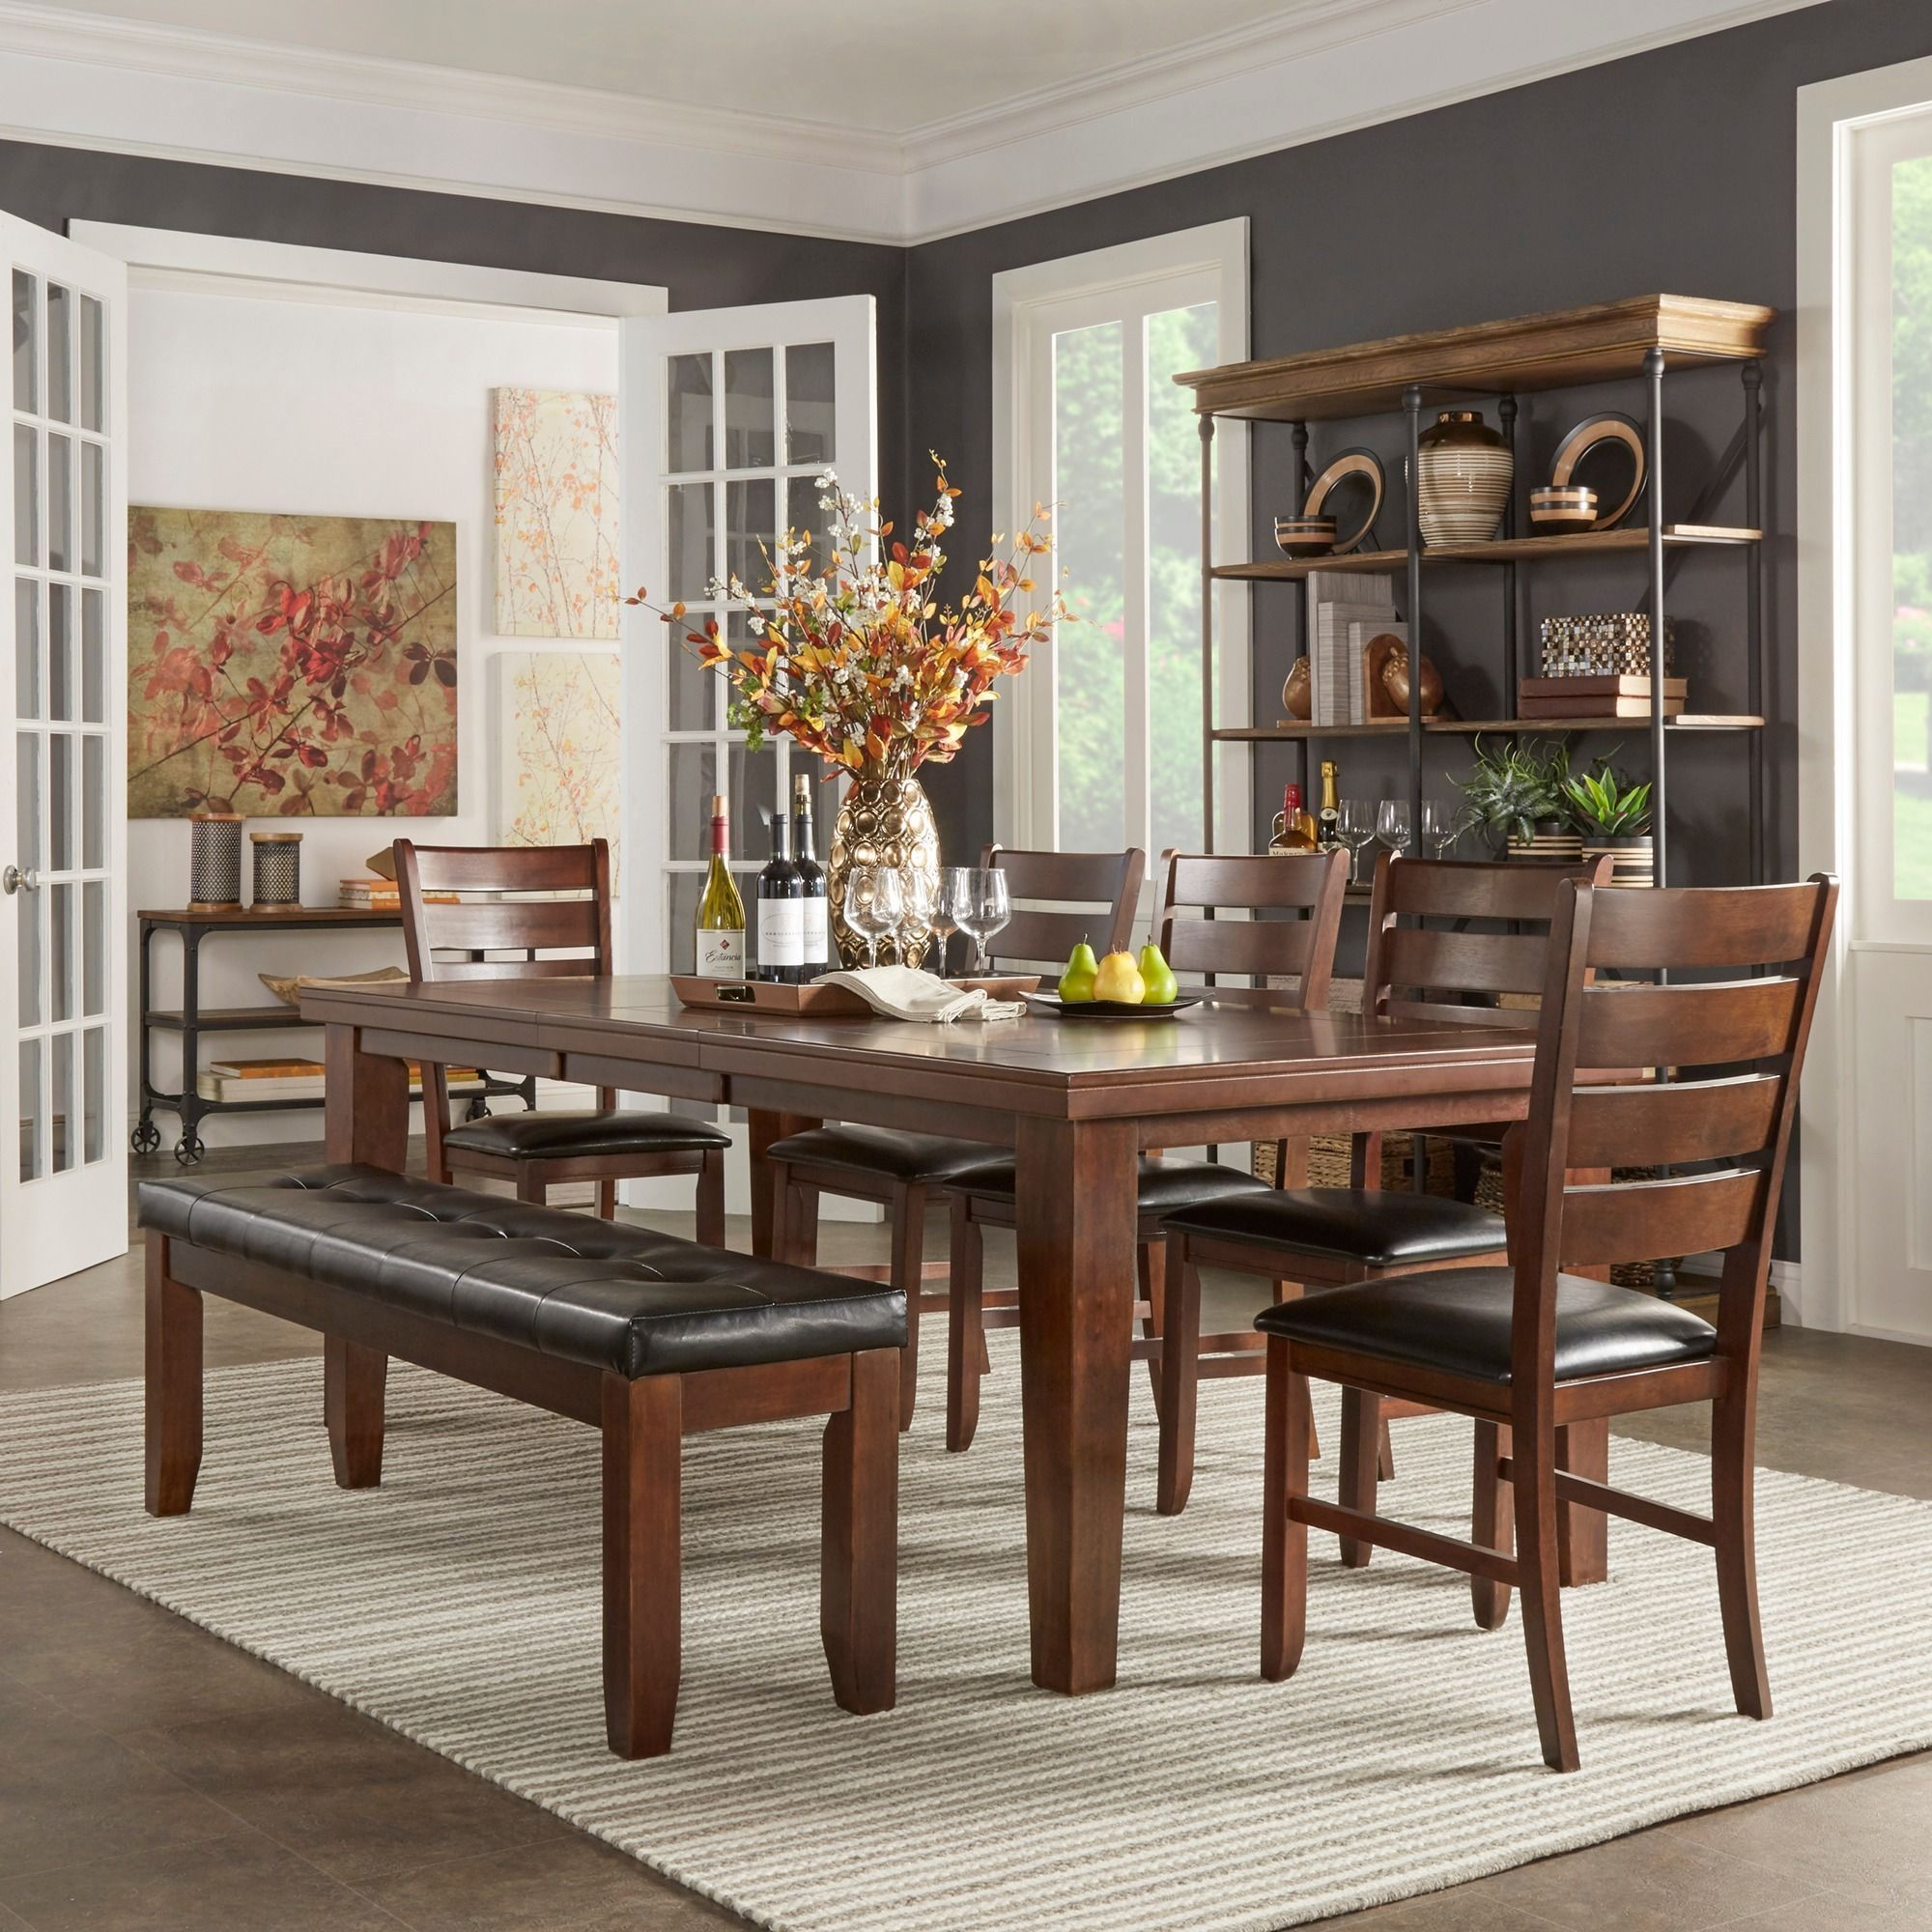 Overstock Com Online Shopping Bedding Furniture Electronics Jewelry Clothing More Elegant Dining Room Small Dining Room Set Dining Room Design Modern